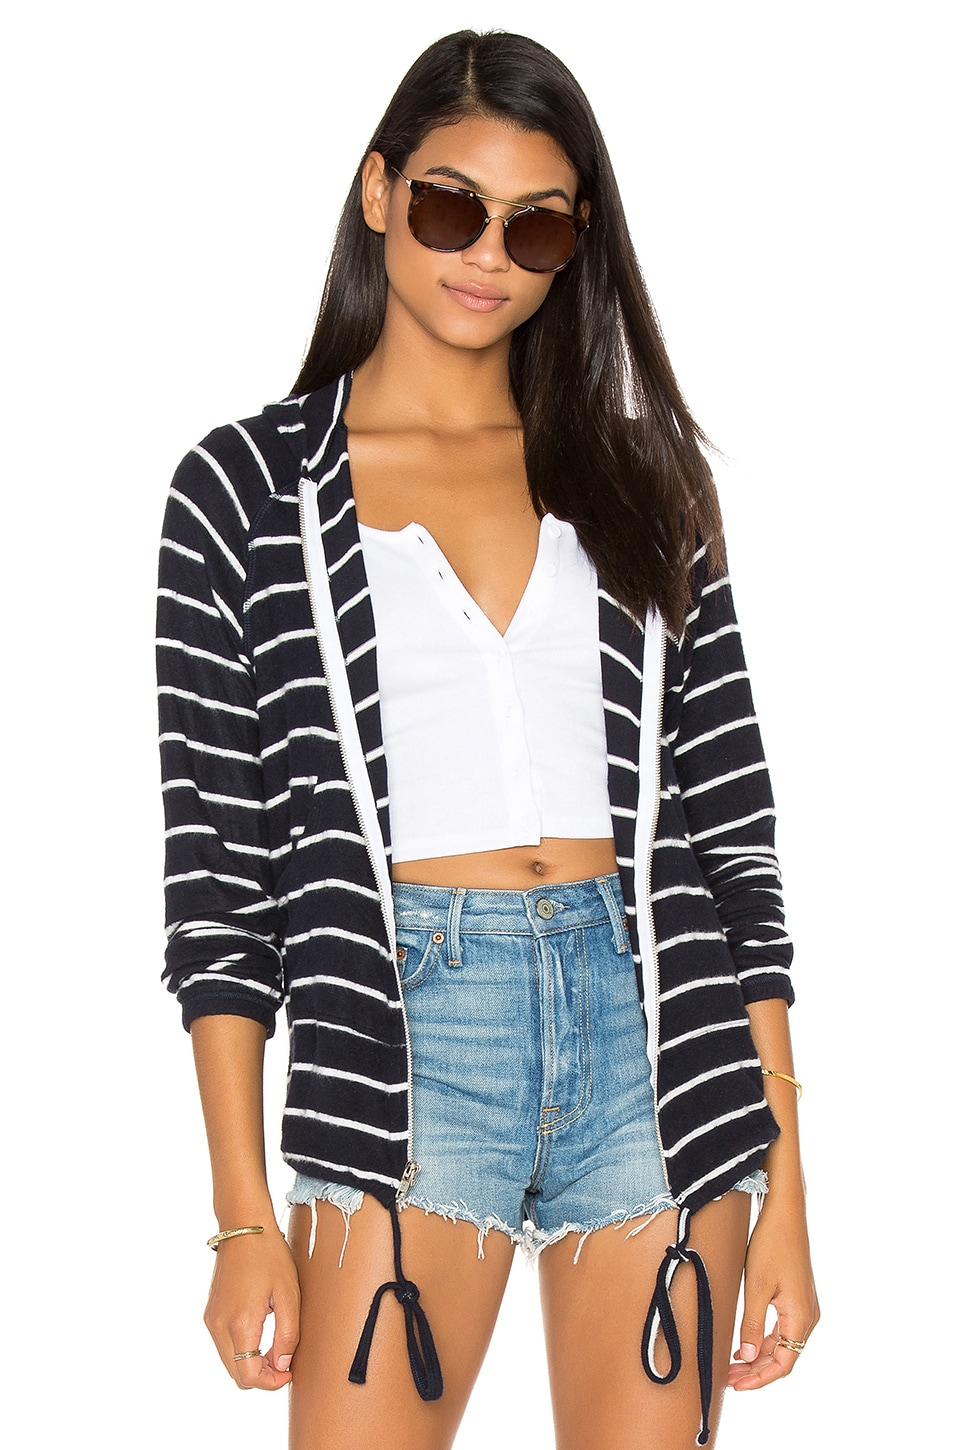 Michael Lauren Zayne Zip Up Hoodie in Navy Stripe